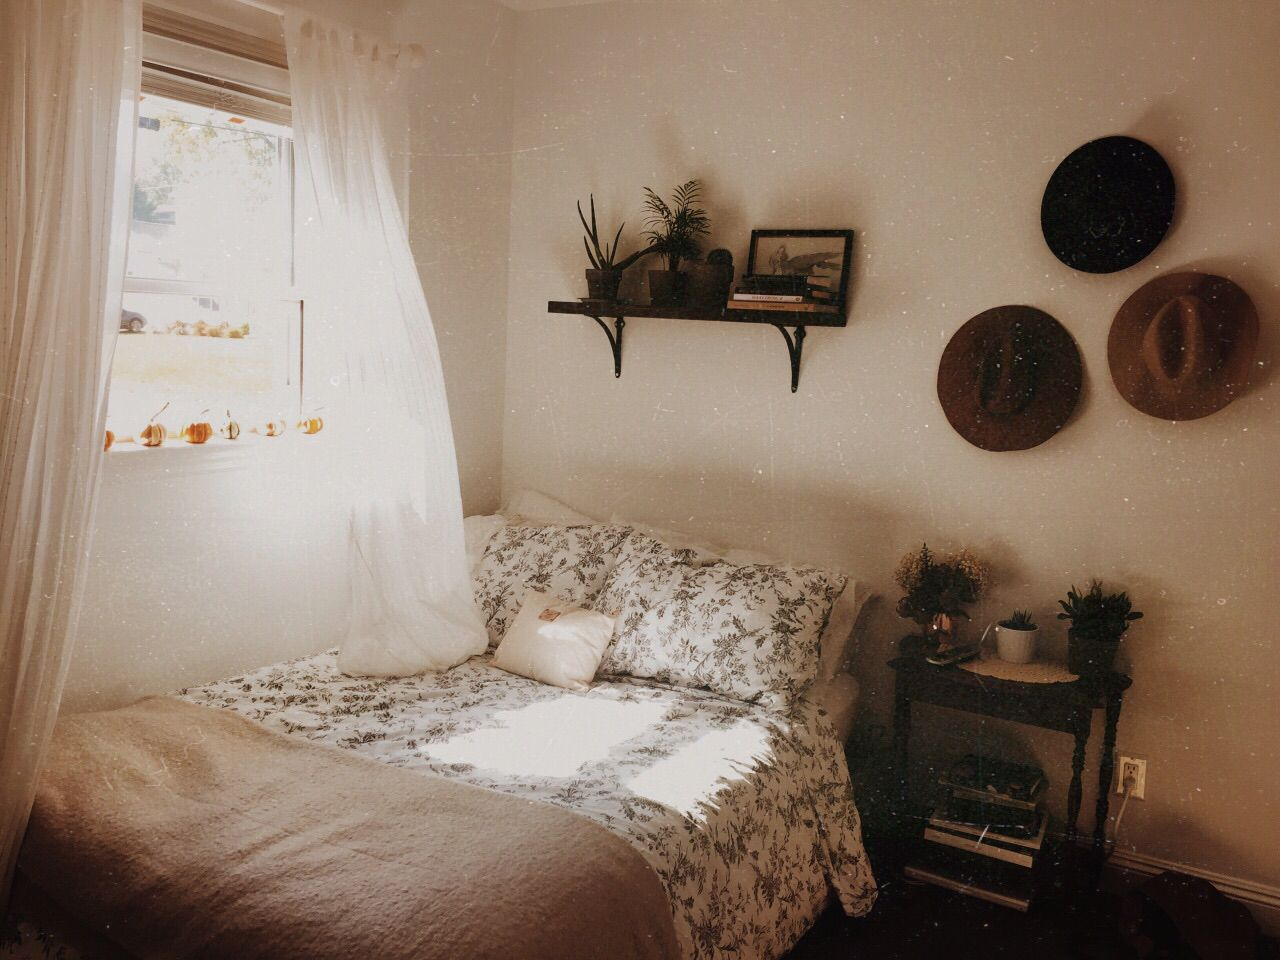 Camere Tumblr Idee : Pin by veronica gikas on bedroom ideas! pinterest